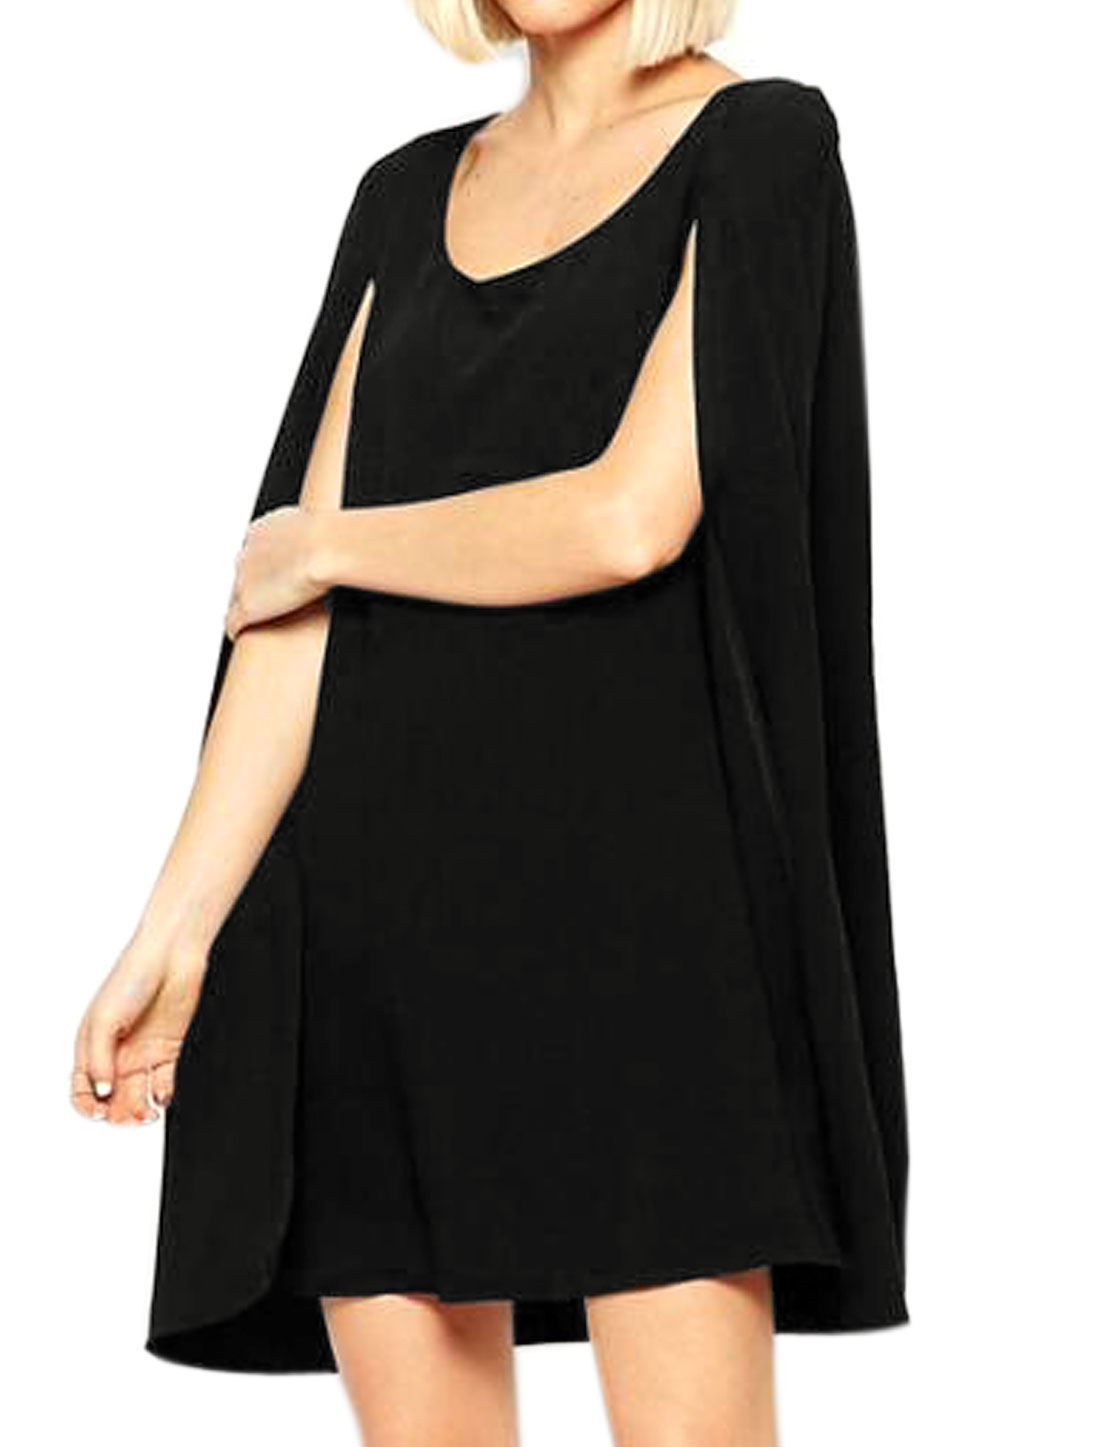 Women Scoop Neck Sleeveless Overlay Back Layered Cape Dress Black S